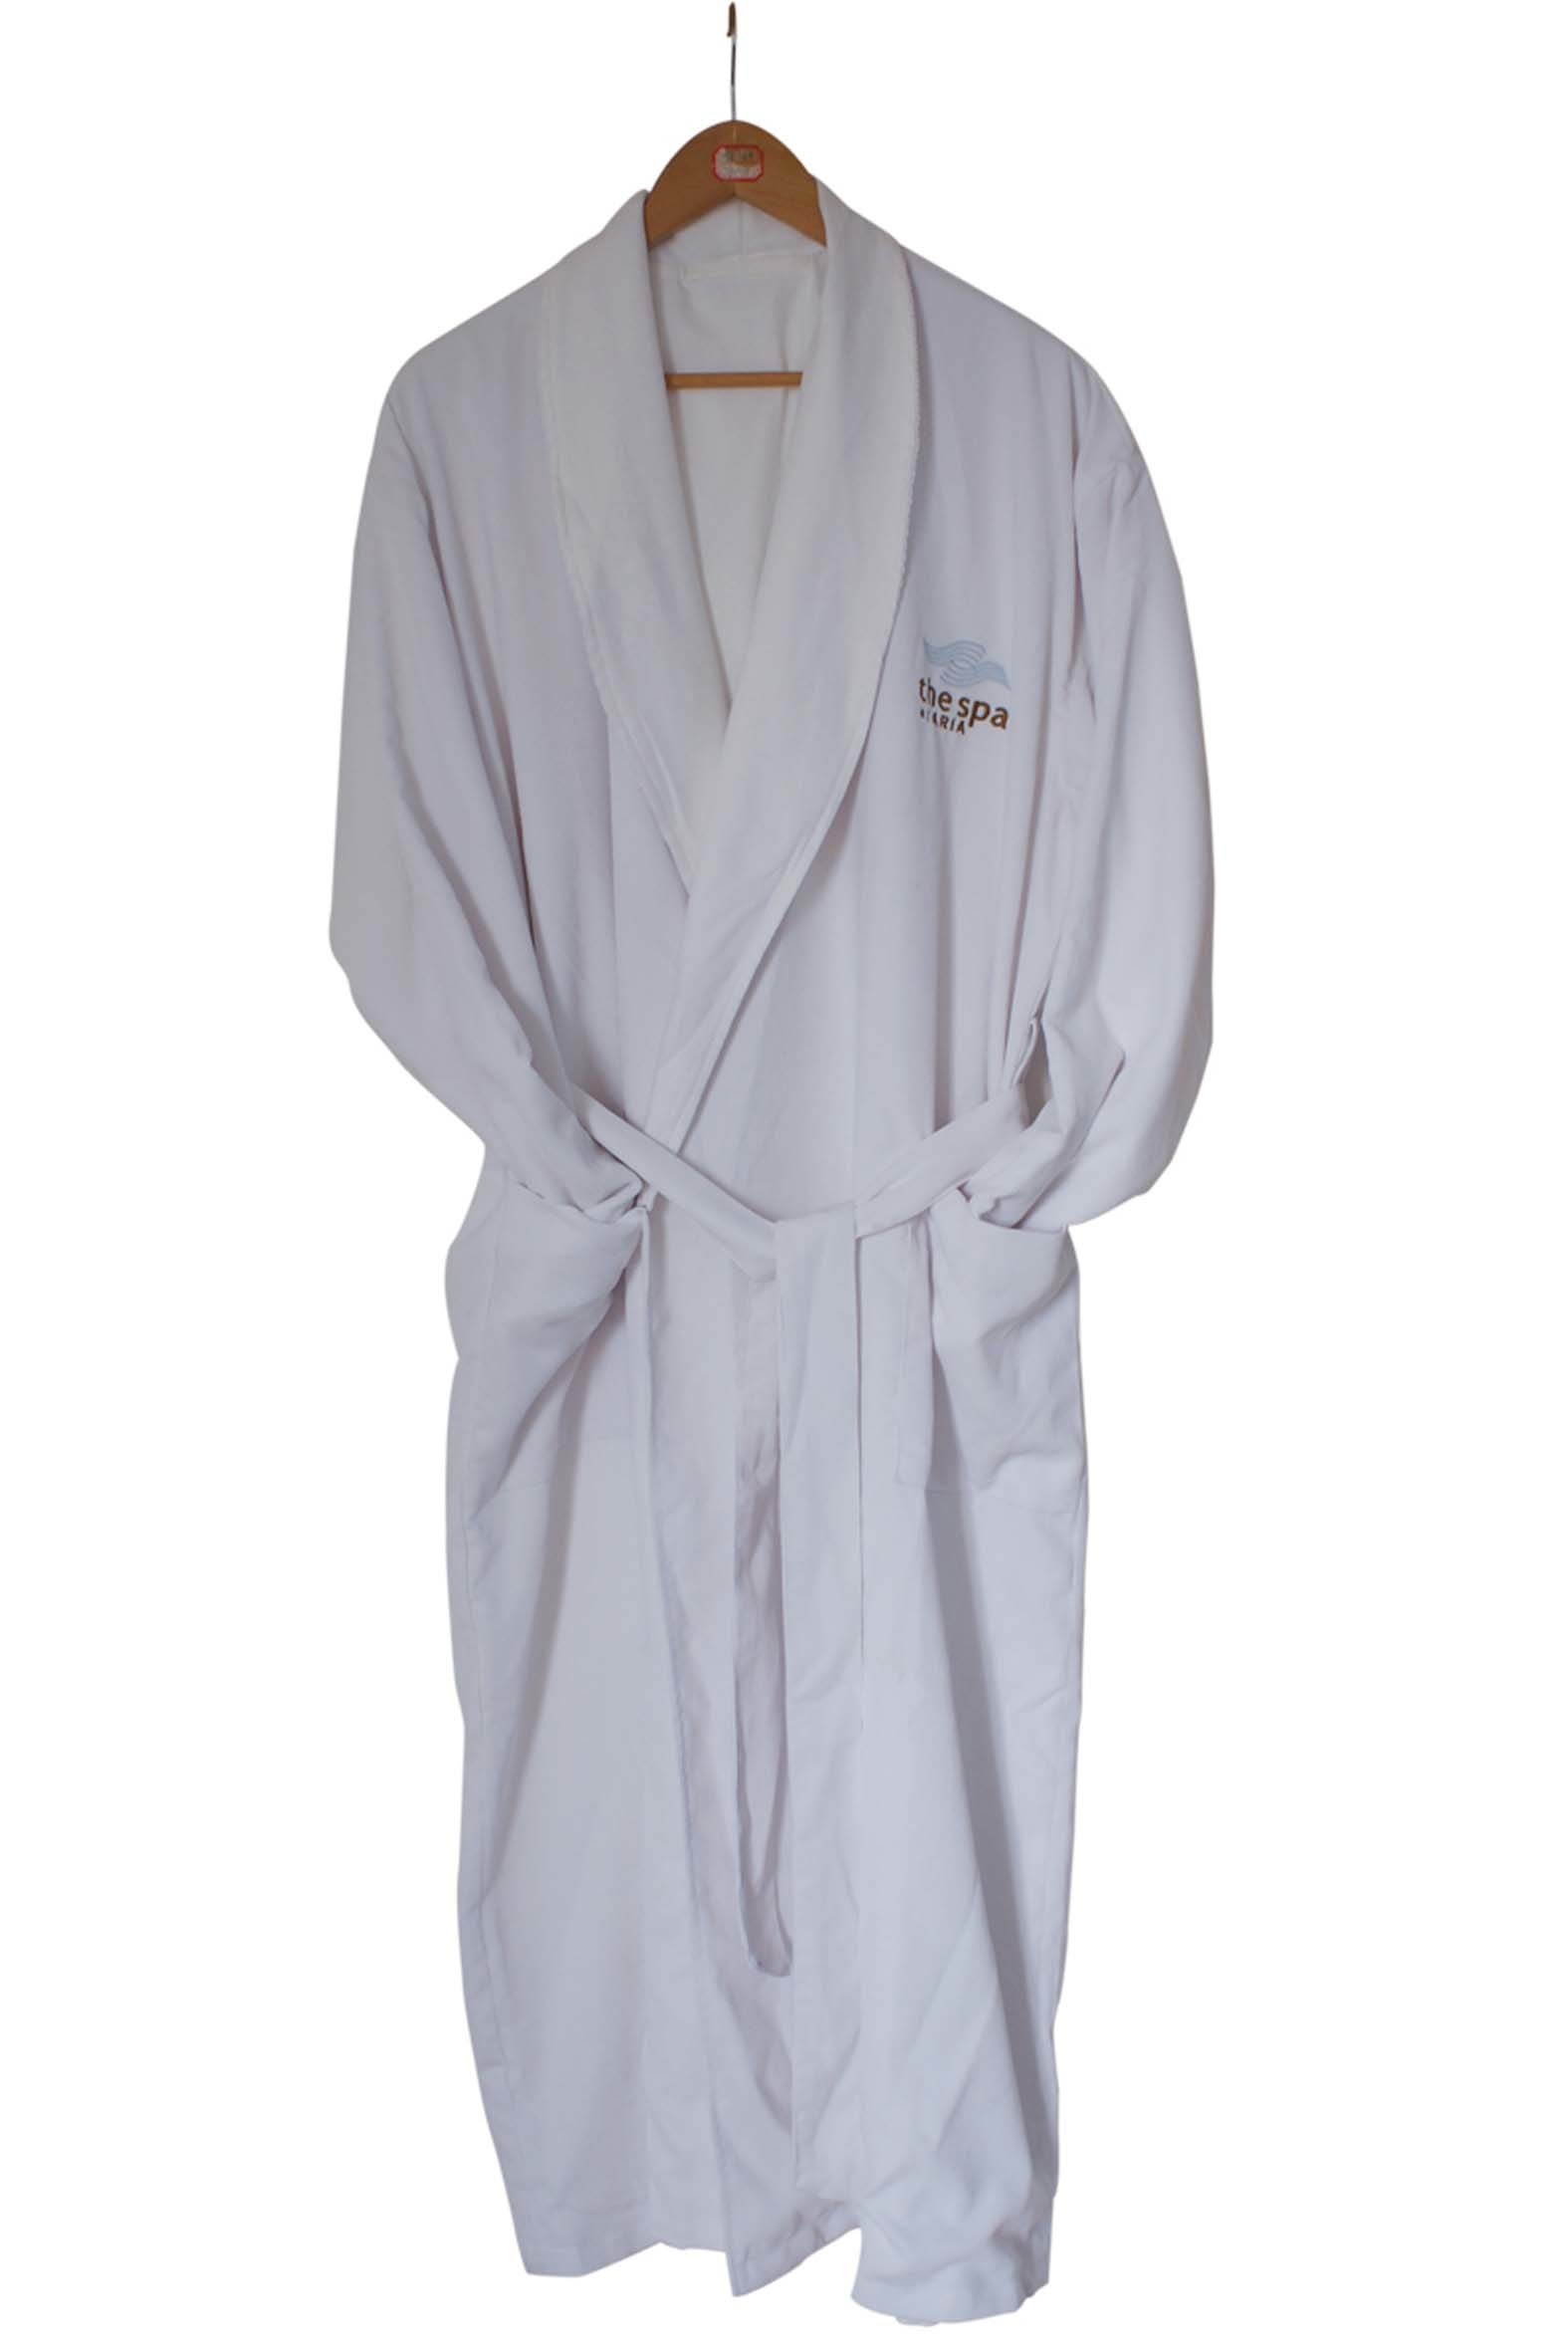 Big and Tall Men's Sleepwear, Night Shirts, Bathrobes, Slippers